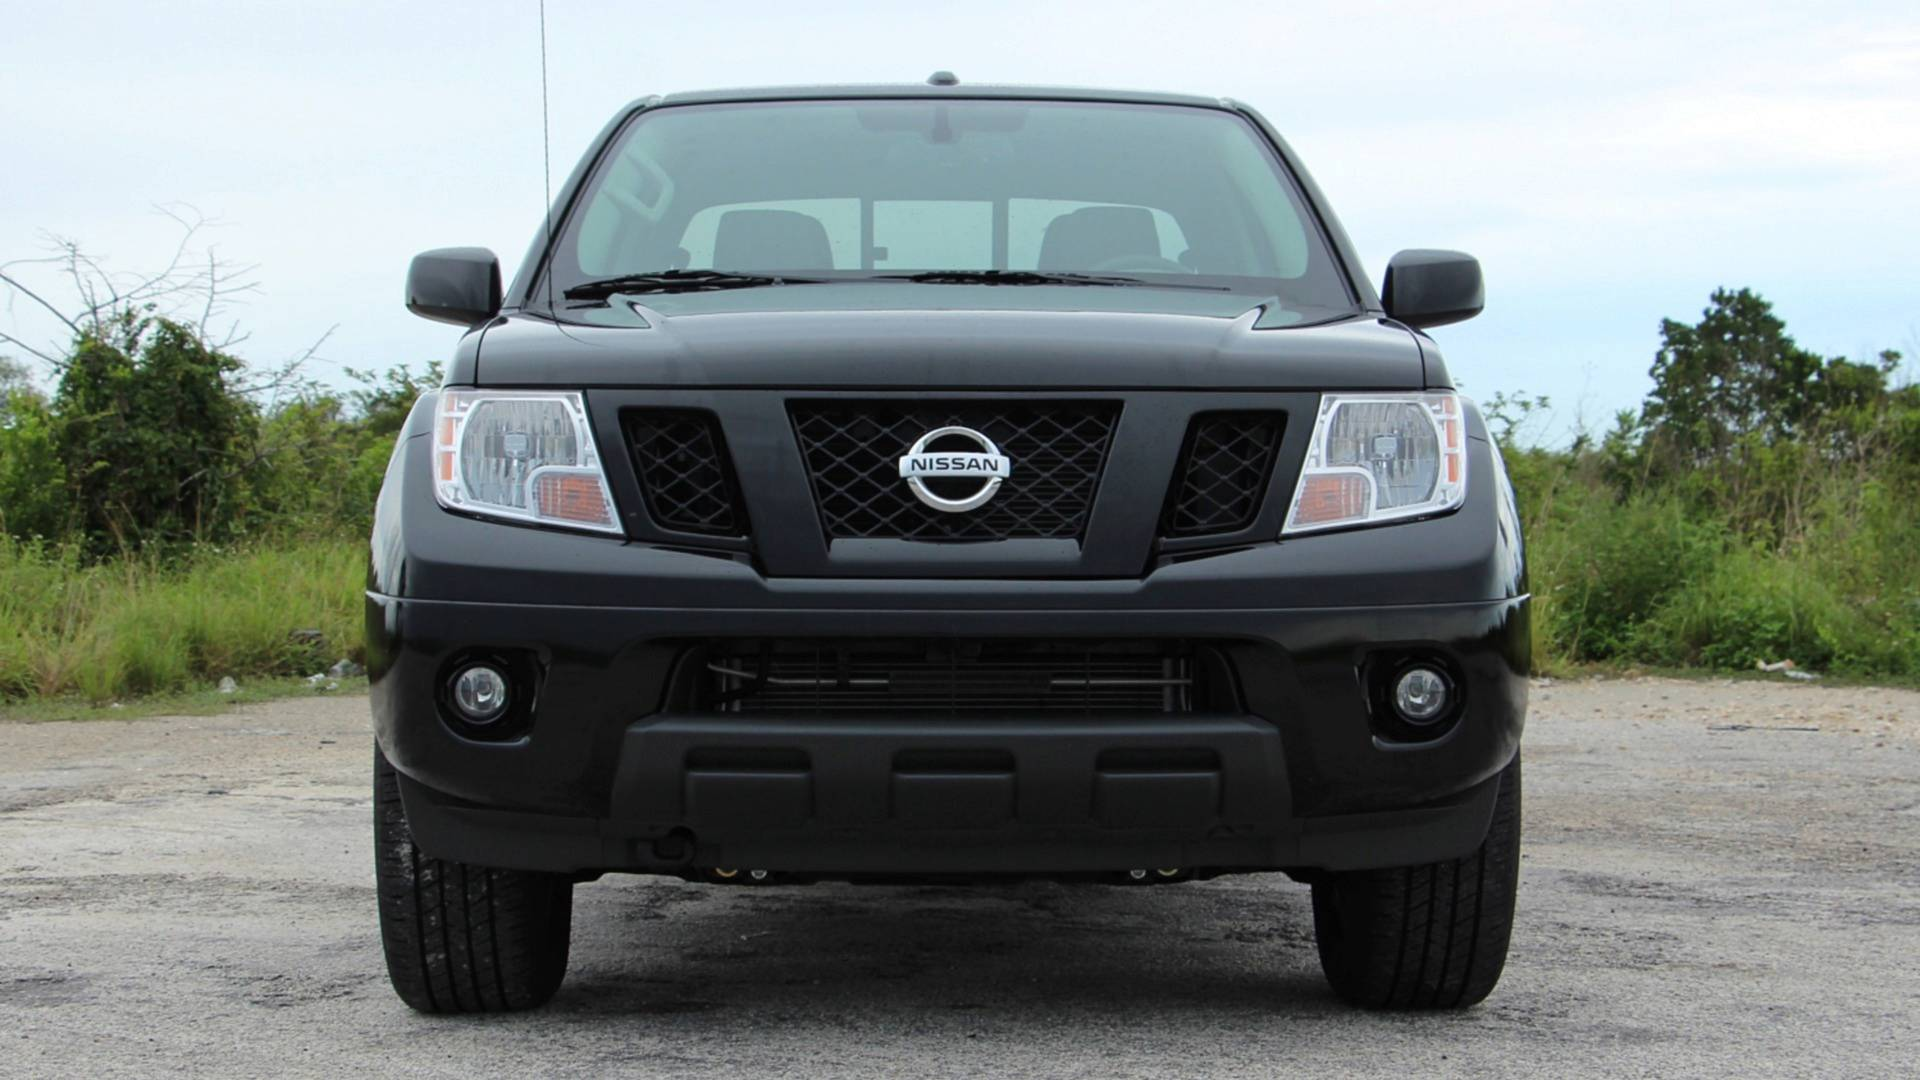 Confirmed Next Gen Nissan Frontier Well Underway